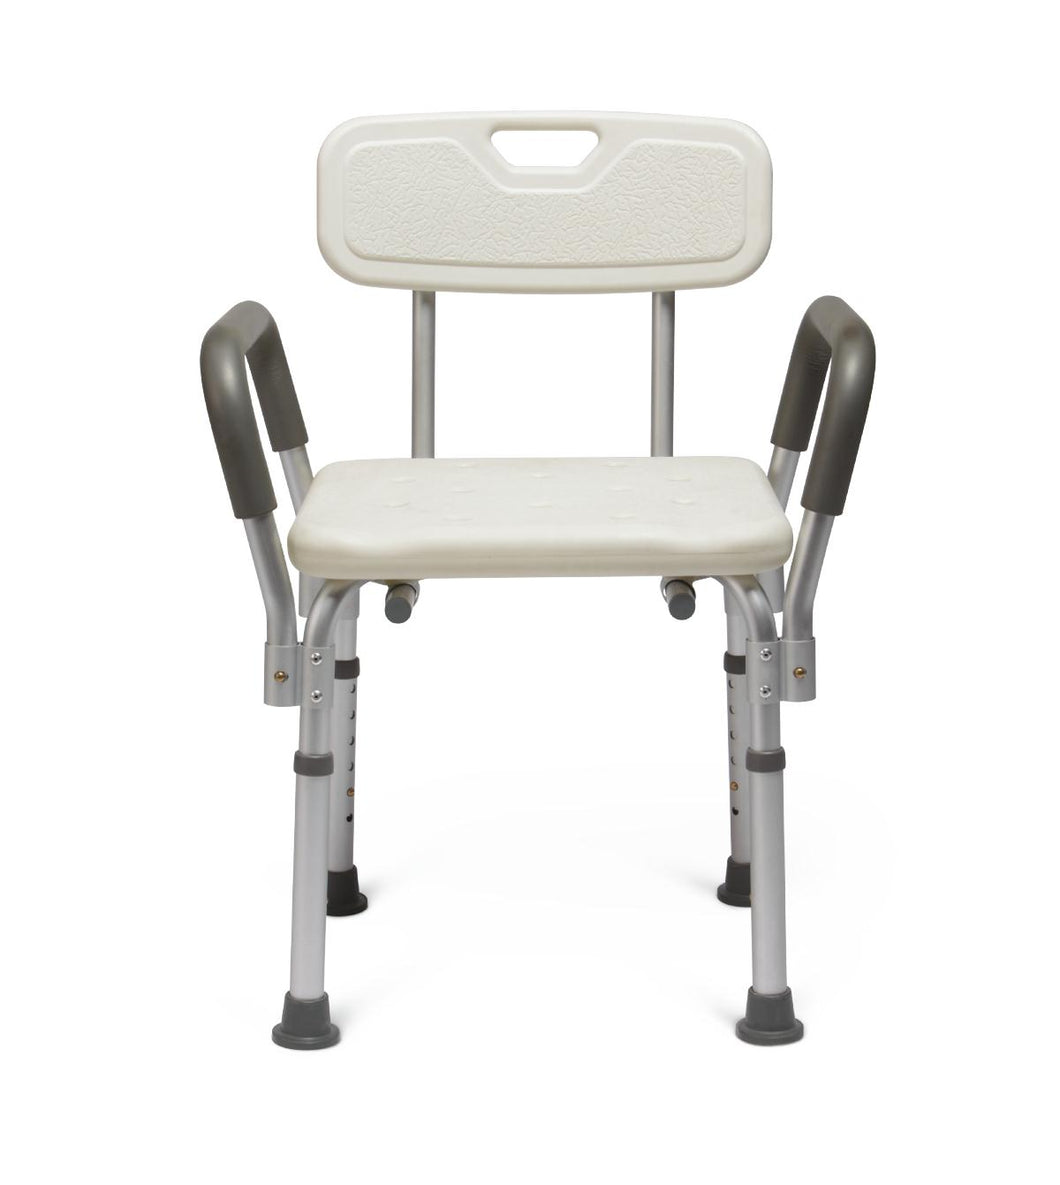 Knockdown Bath Bench with Arms - MDS89745RA